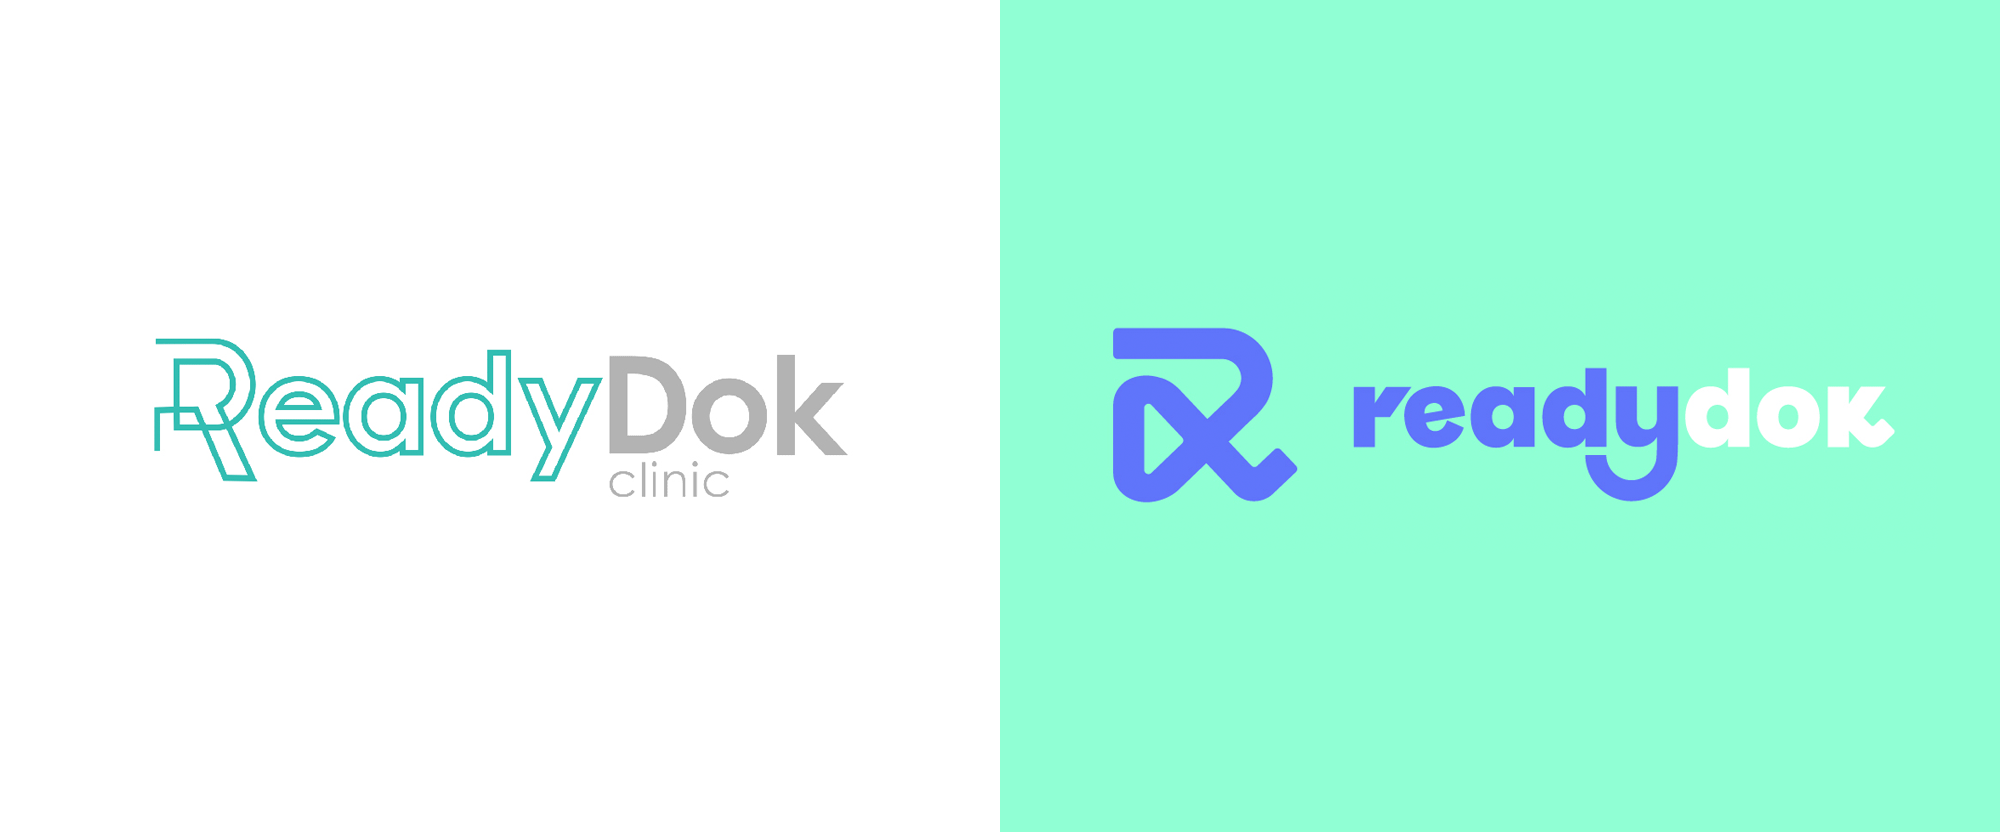 New Logo and Identity for Readydok by Lucas Aritz